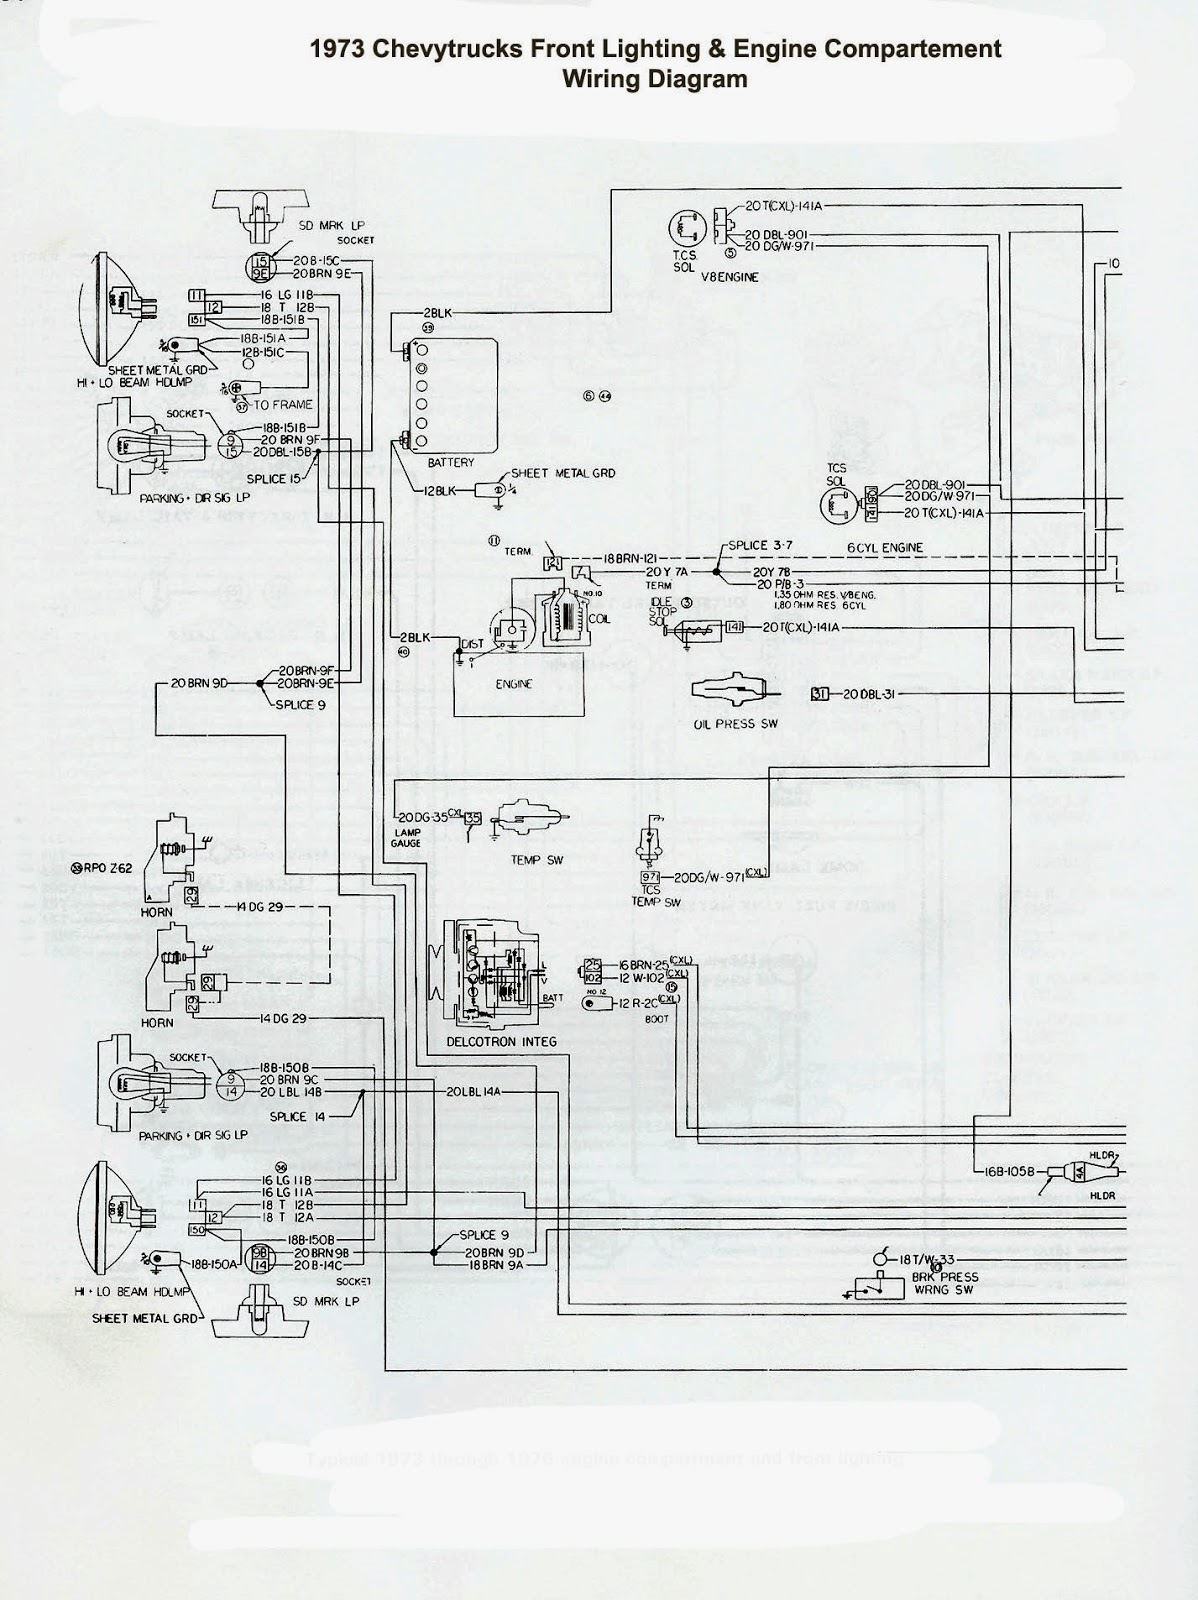 chevytruks.+engine+n+frontlight73 76_eng_frt_light+copy electrical winding wiring diagrams 1978 chevy wiring diagram at bakdesigns.co